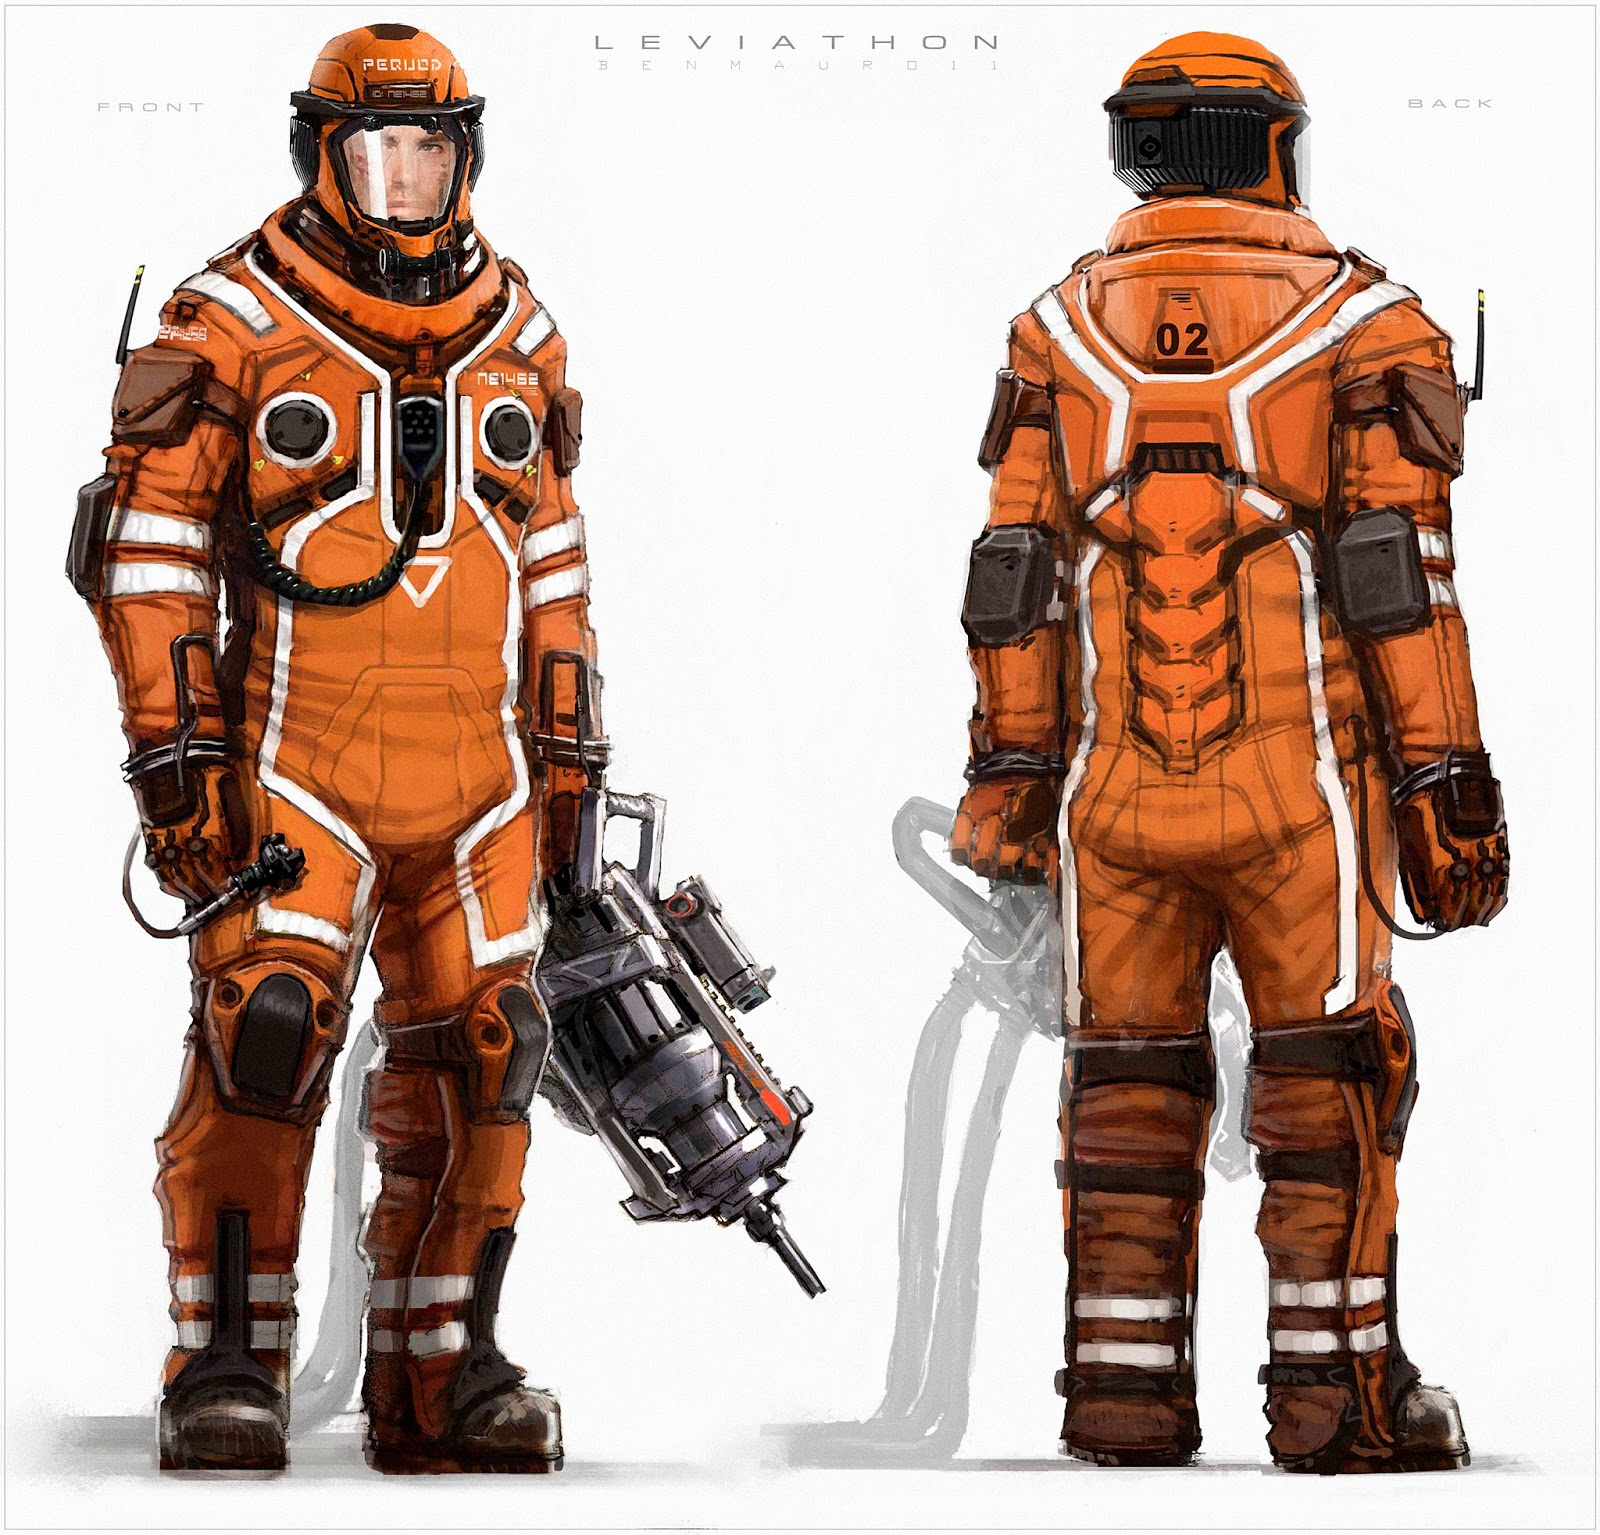 The_Leviathan_Concept_Art_Ben_Mauro_jumpsuit_03